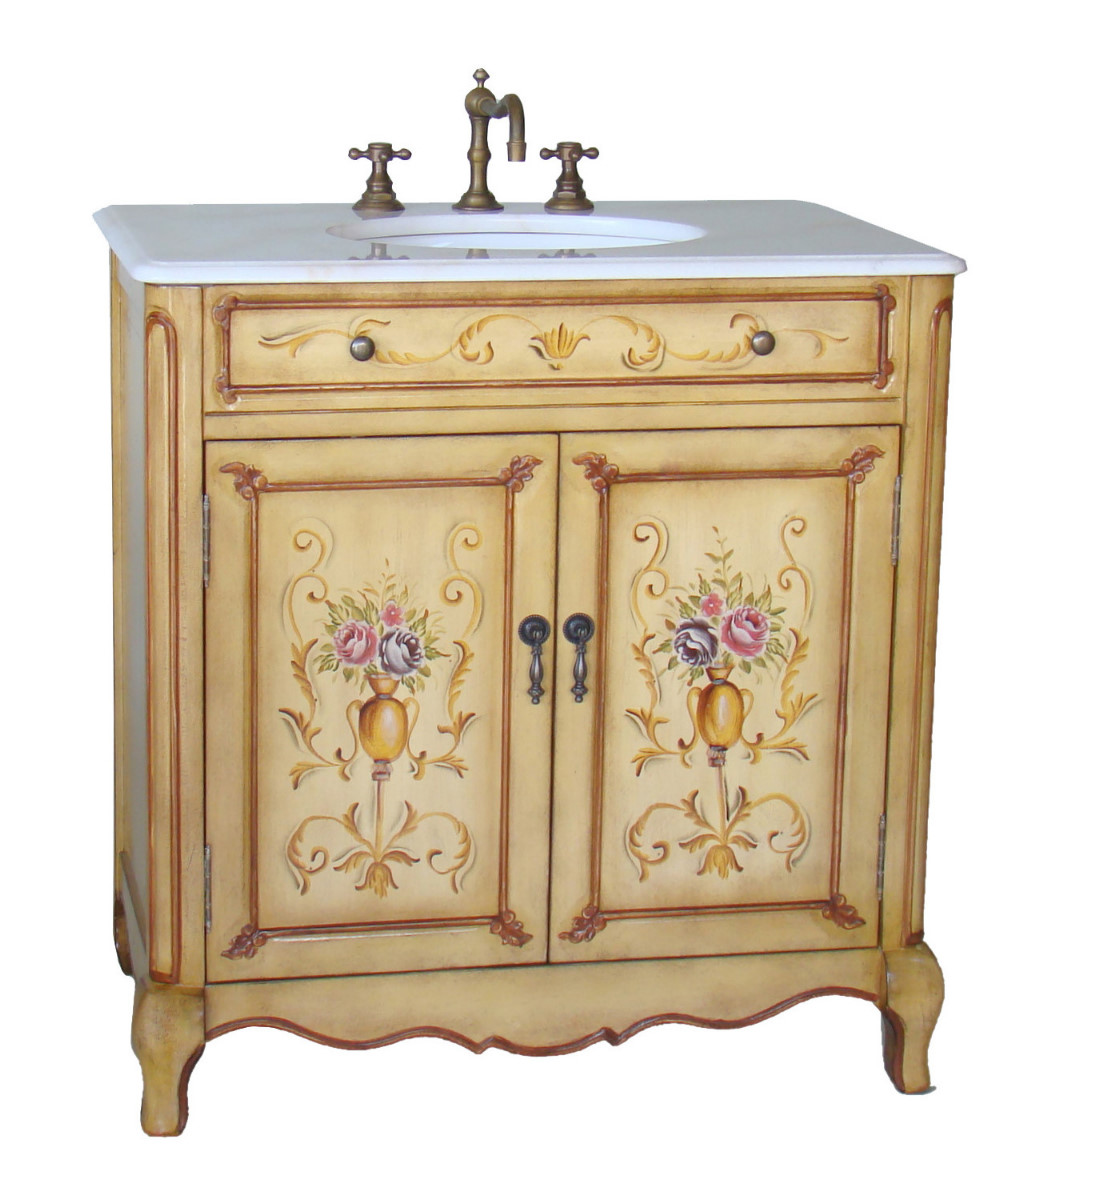 Painted Bathroom Vanity 32 Inch Bathroom Vanity Hand Painted Floral Design Beige